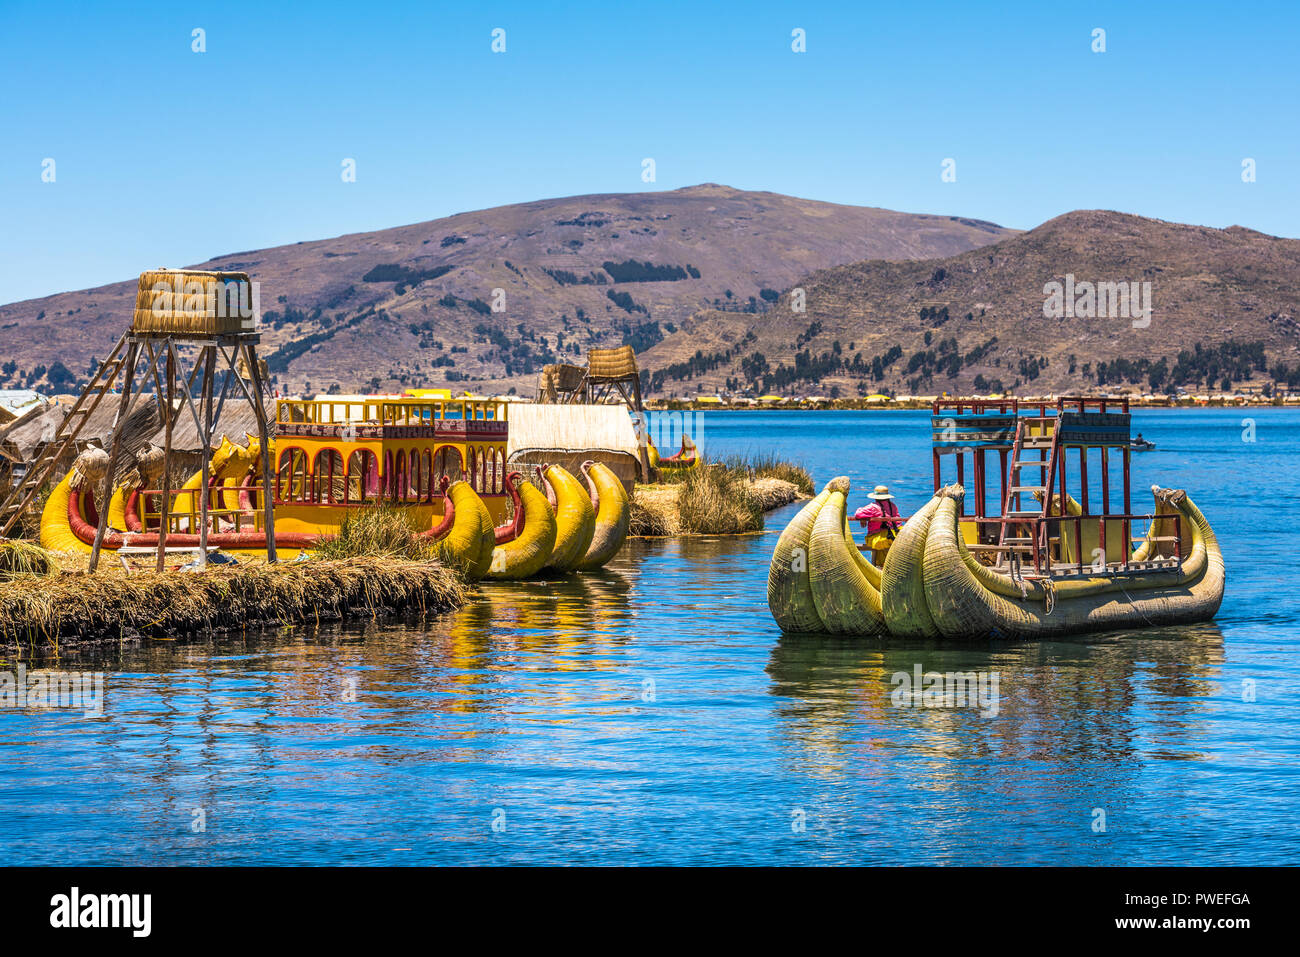 Uros floating islands of lake Titicaca, Peru, South America - Stock Image